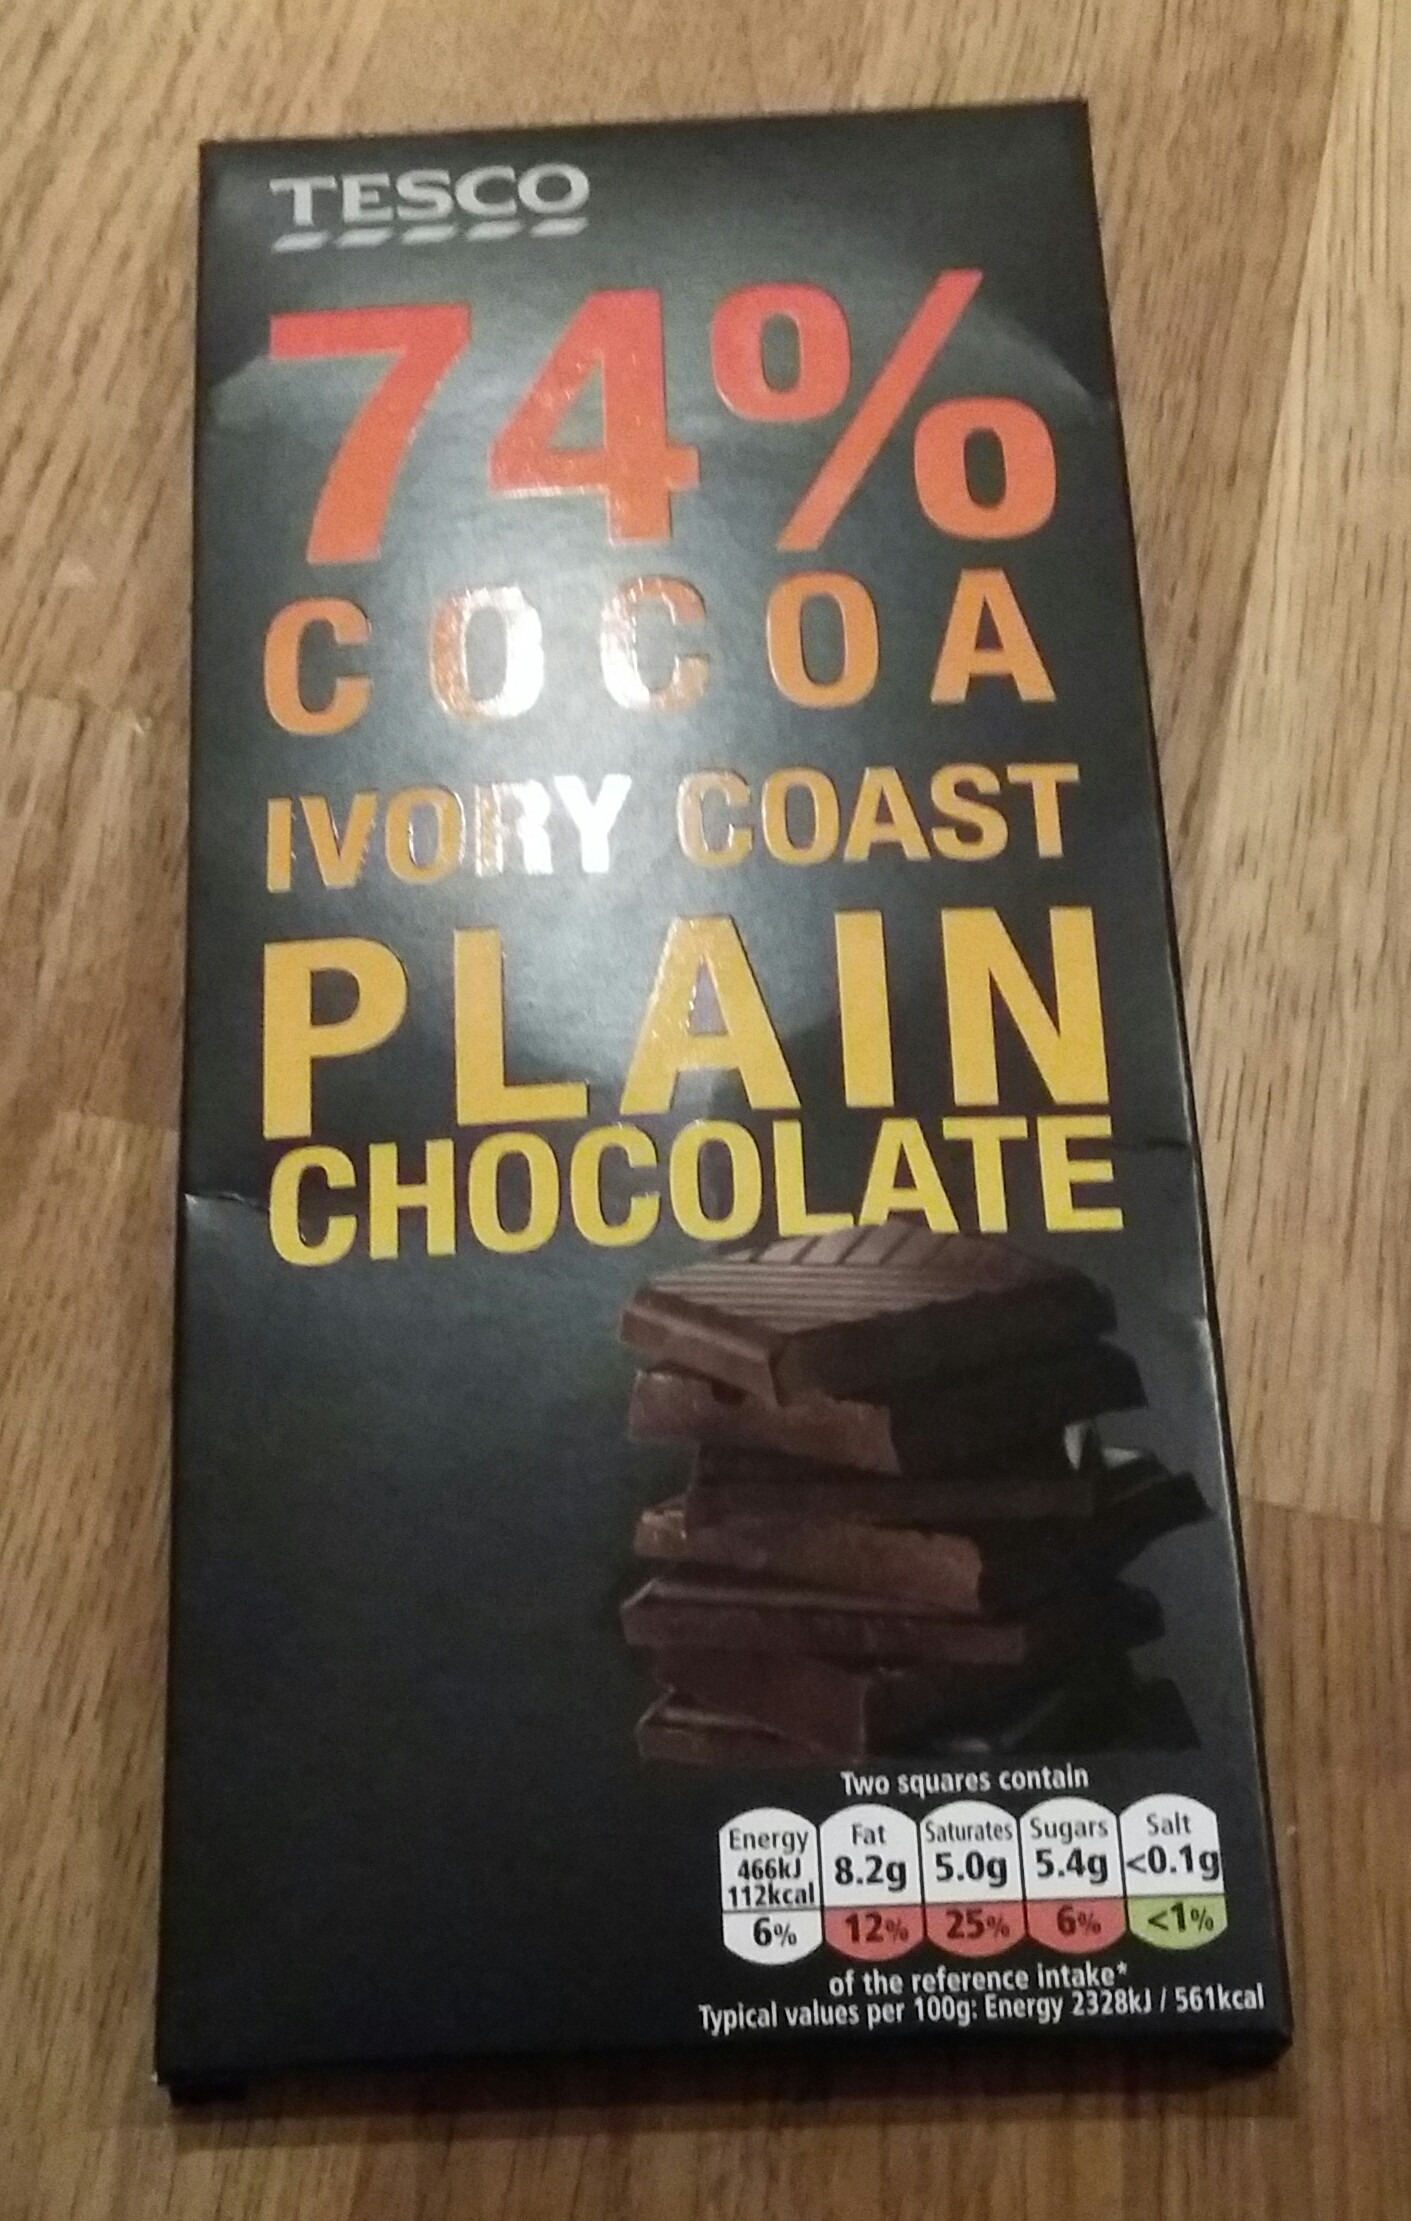 Tesco Ivory Coast 74% Cocoa Plain Chocolate